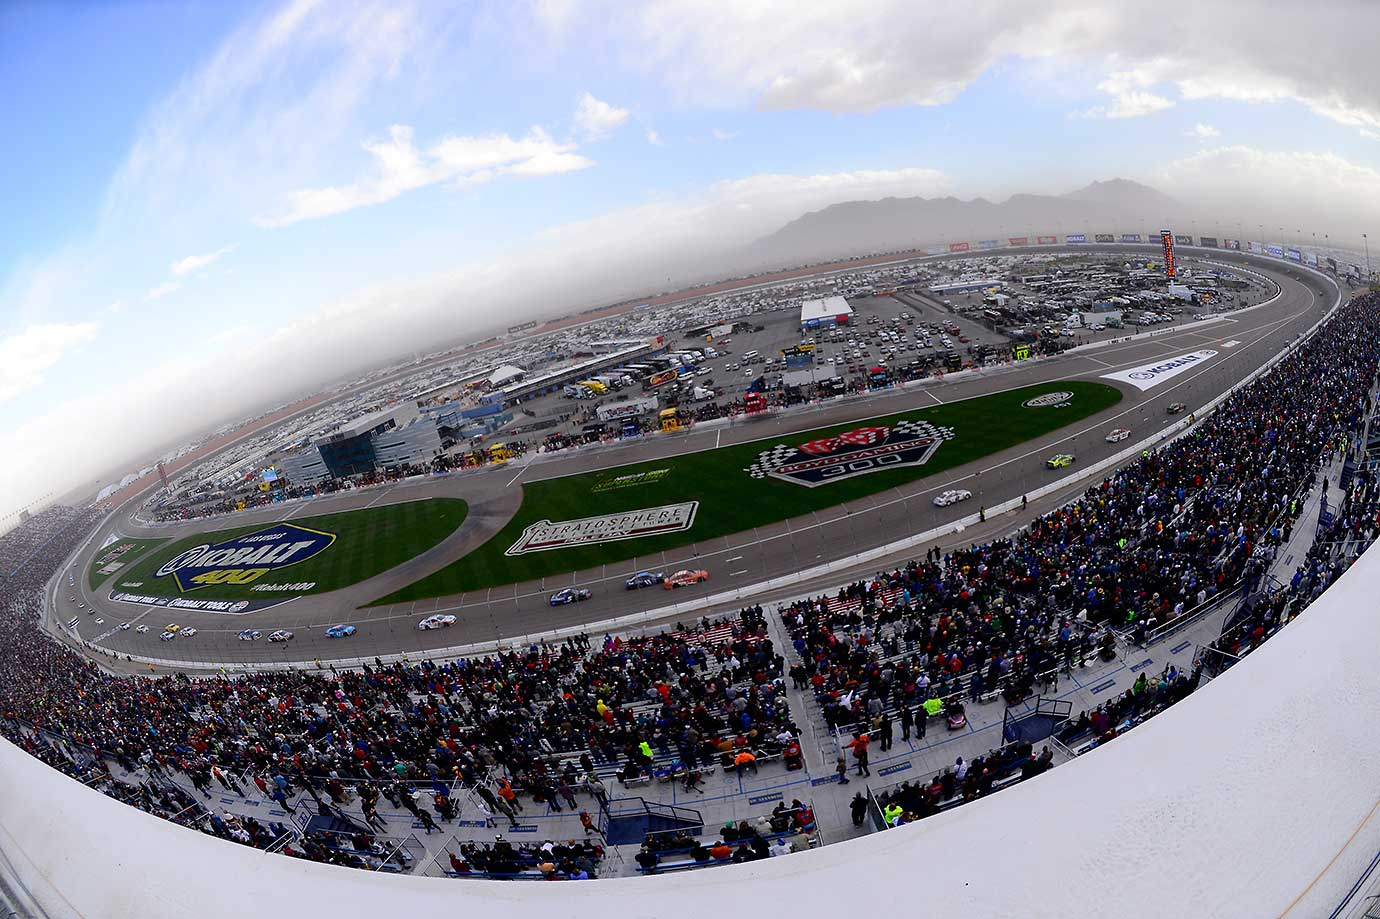 A view of a dust storm over the NASCAR Sprint Cup Series Kobalt 400 at Las Vegas Motor Speedway.